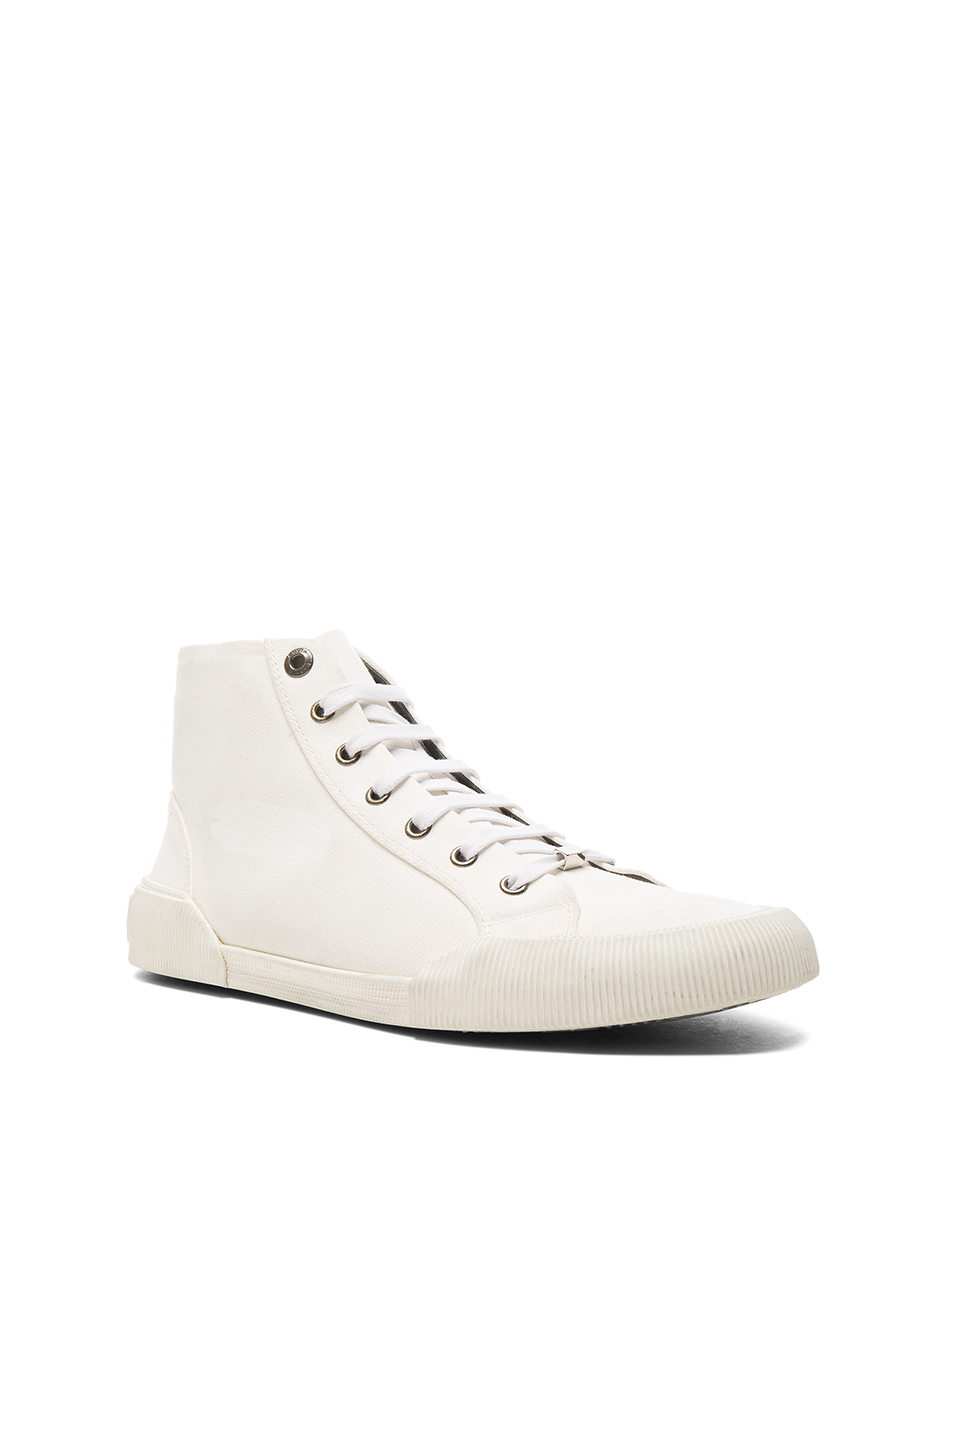 Photo of Lanvin Canvas Destroy Effect Mid-Top Sneakers in White - shop Lanvin menswear